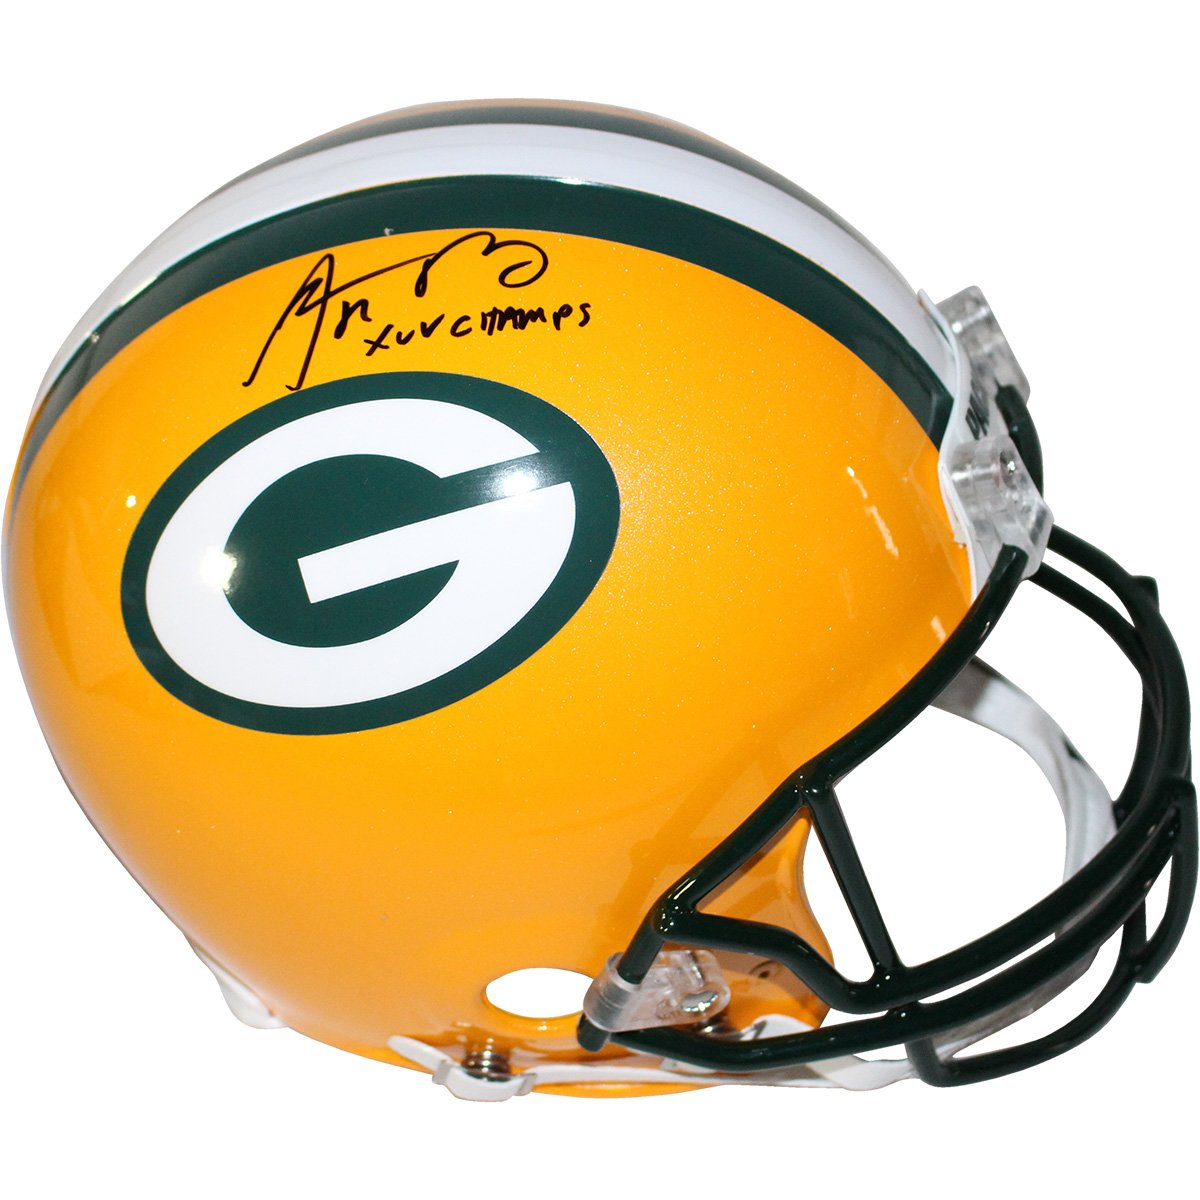 Image of Aaron Rodgers Green Bay Packers Full Size Authentic Helmet w/ XLV Champ Insc